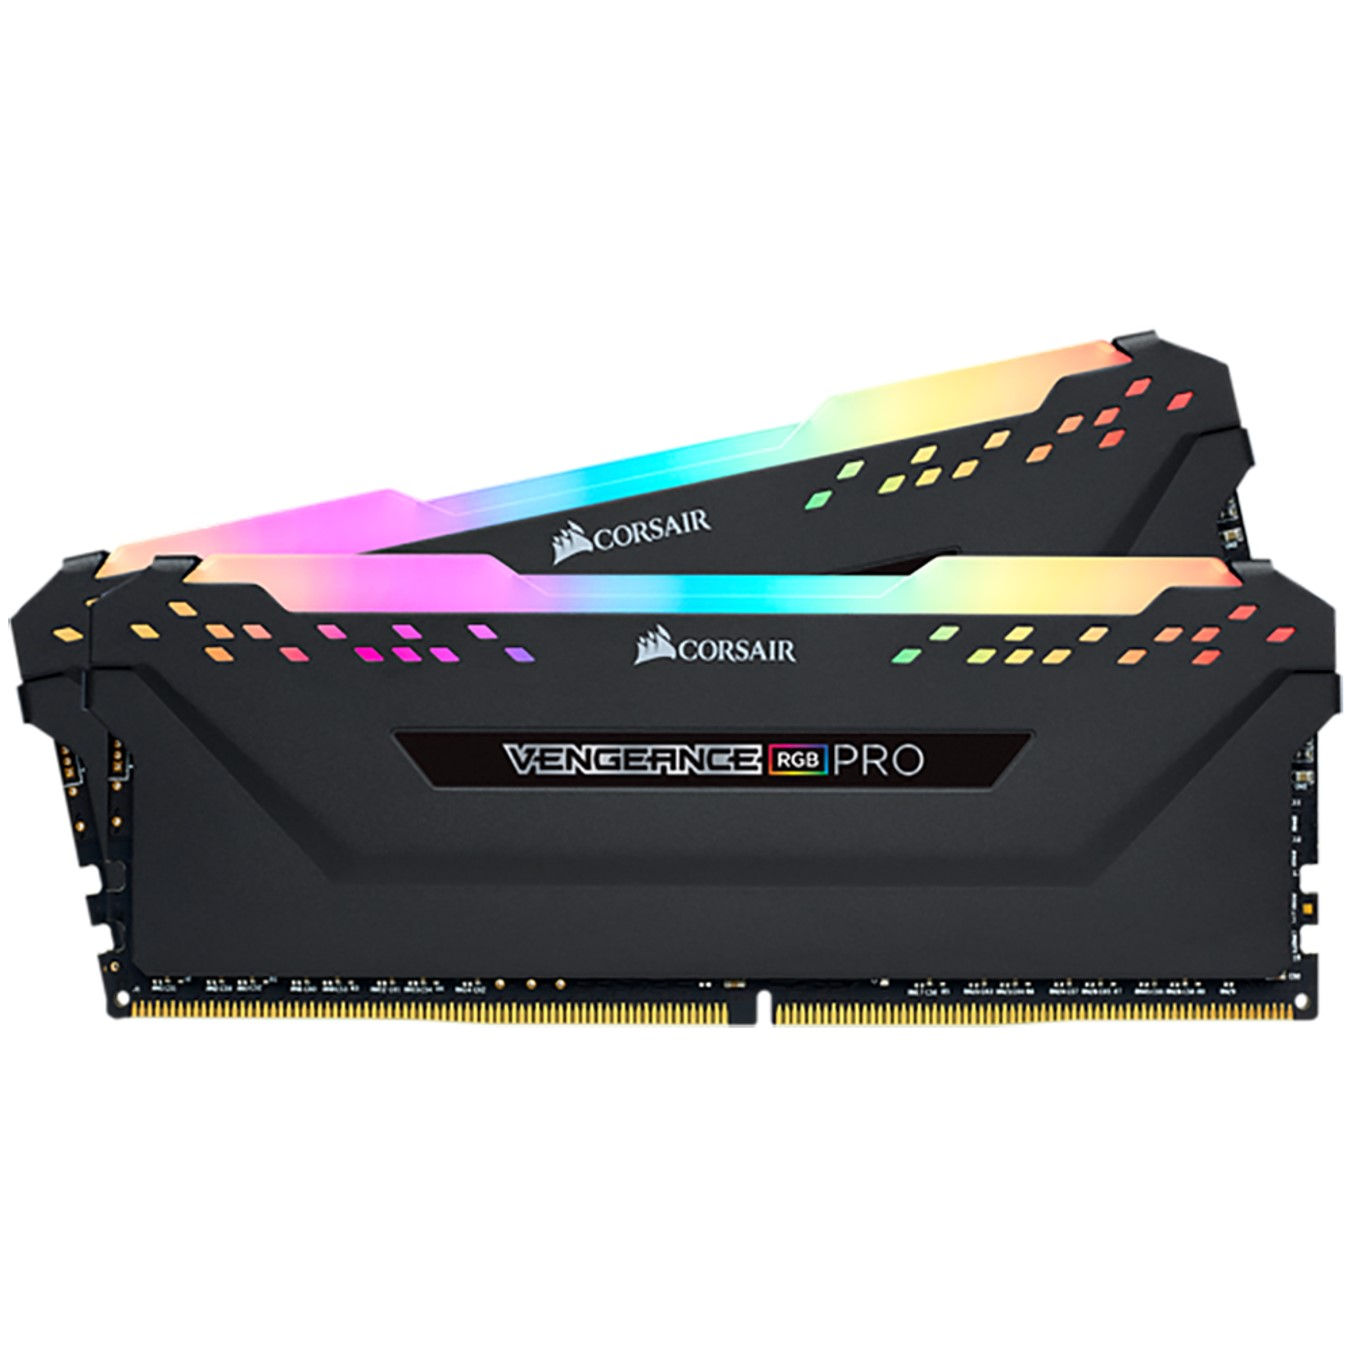 MEMORIA DDR4 16GB KIT RGB PRO 2X8 CORSAIR   PC4-24000